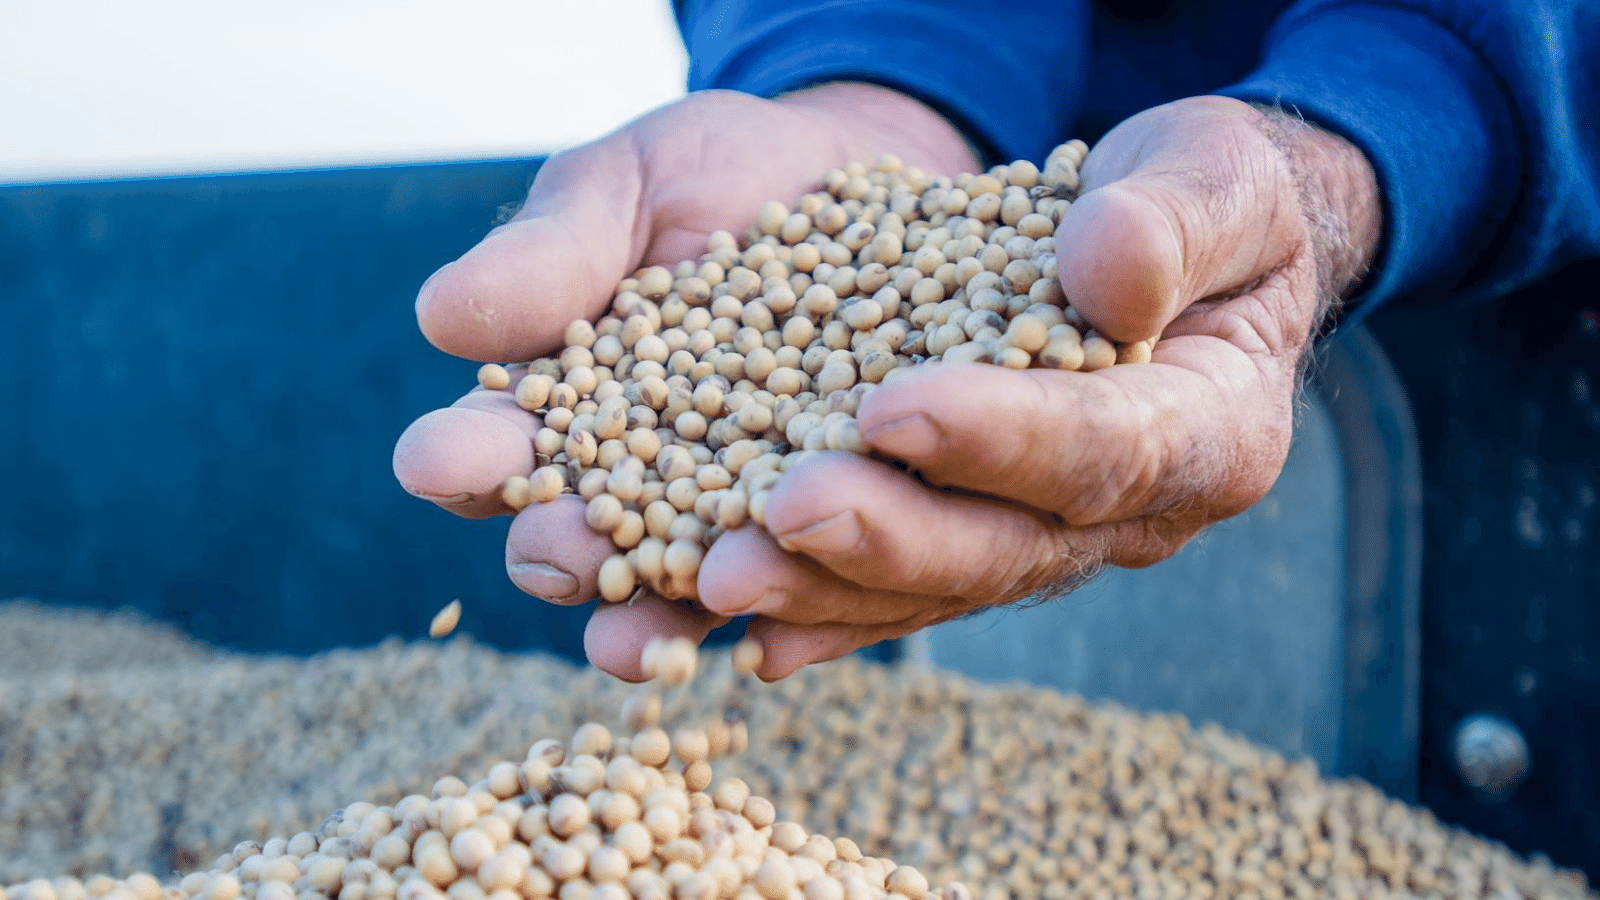 A farmer holds a handful of soybeans from a full grain